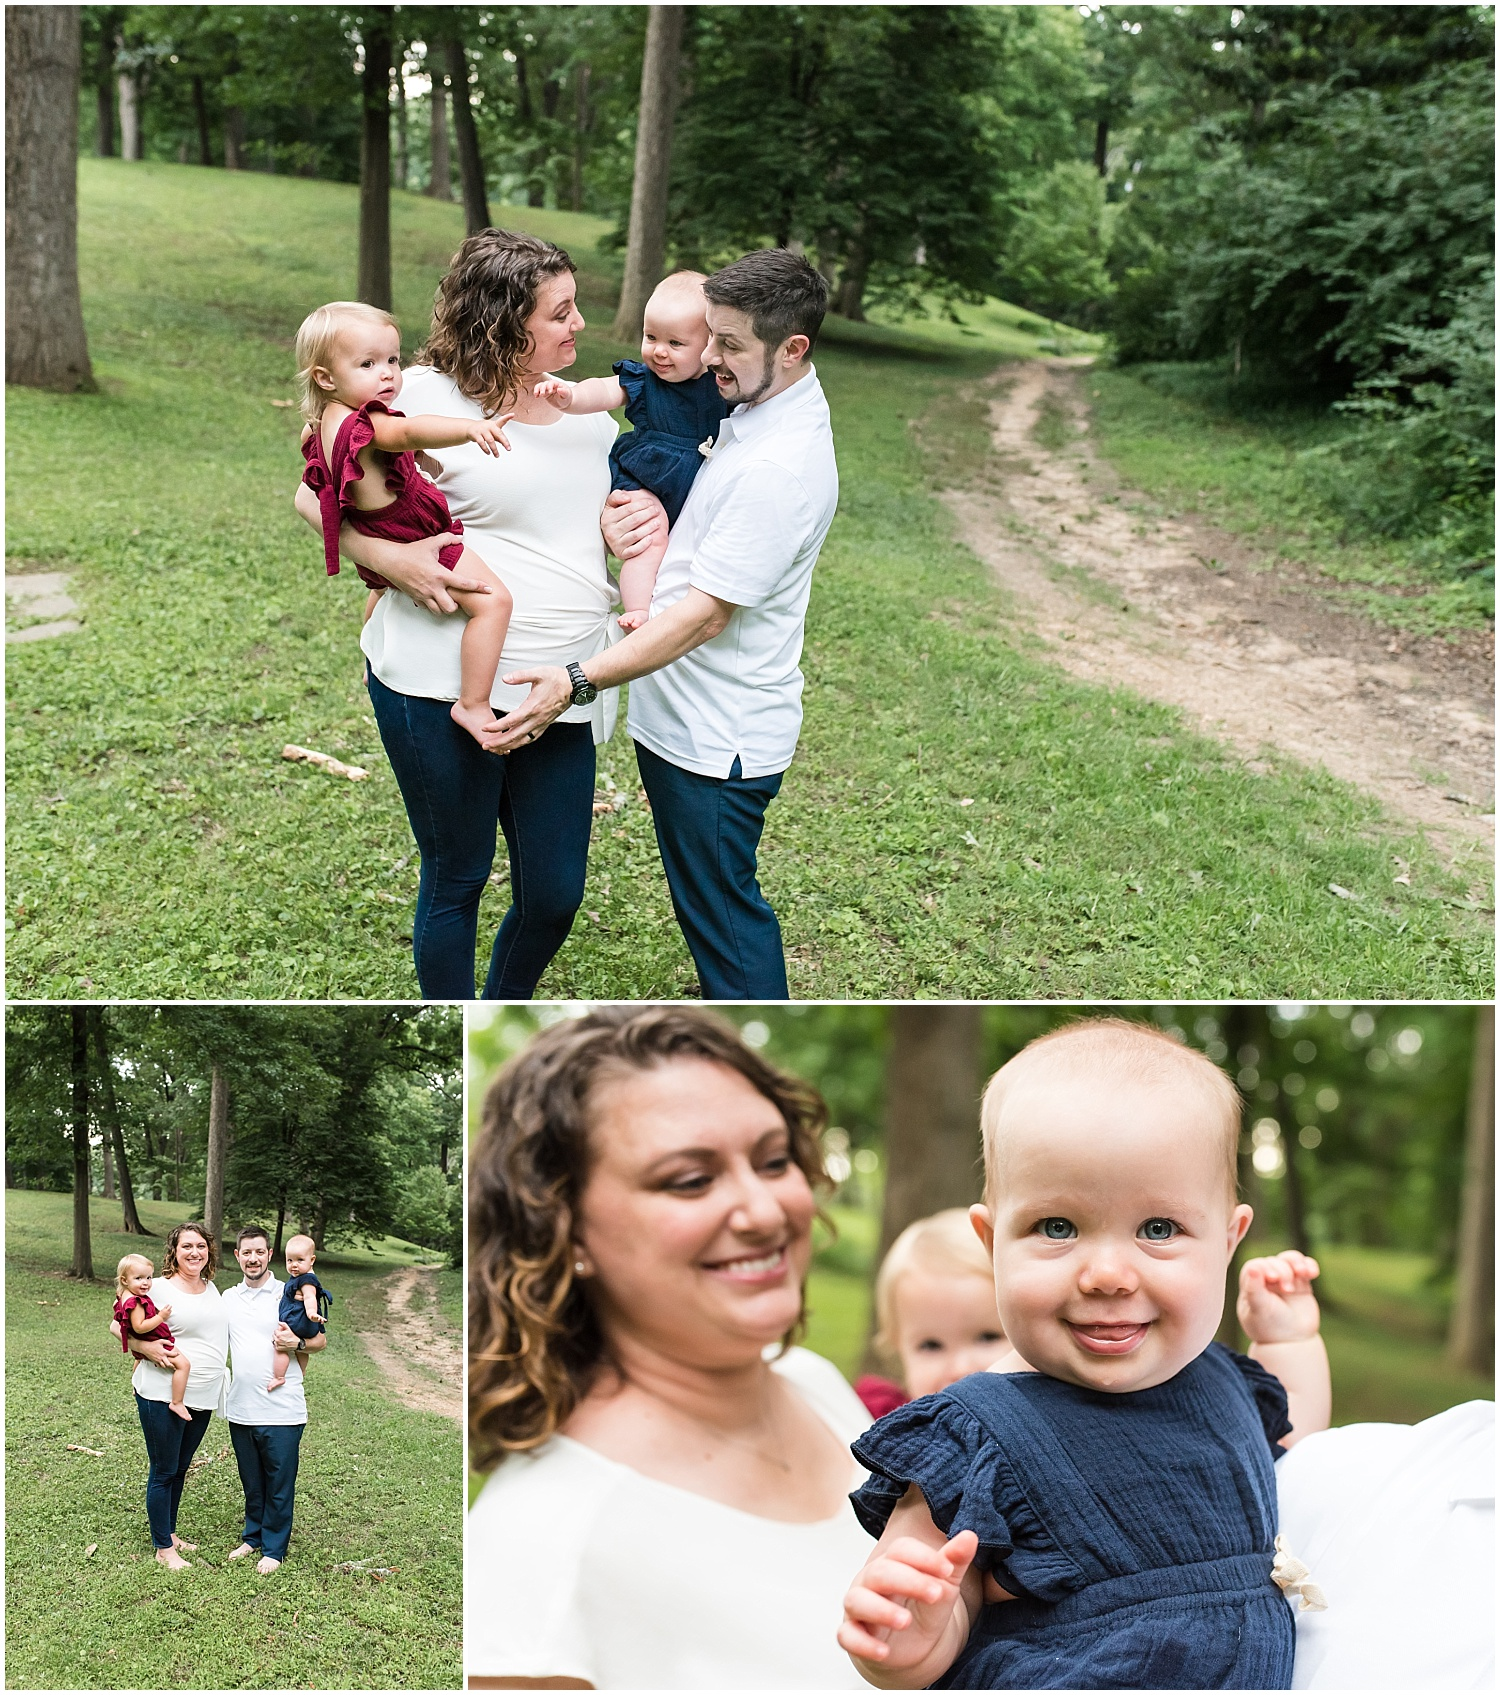 DC-family-photographers-tabitha-maegan-photography (2).jpg